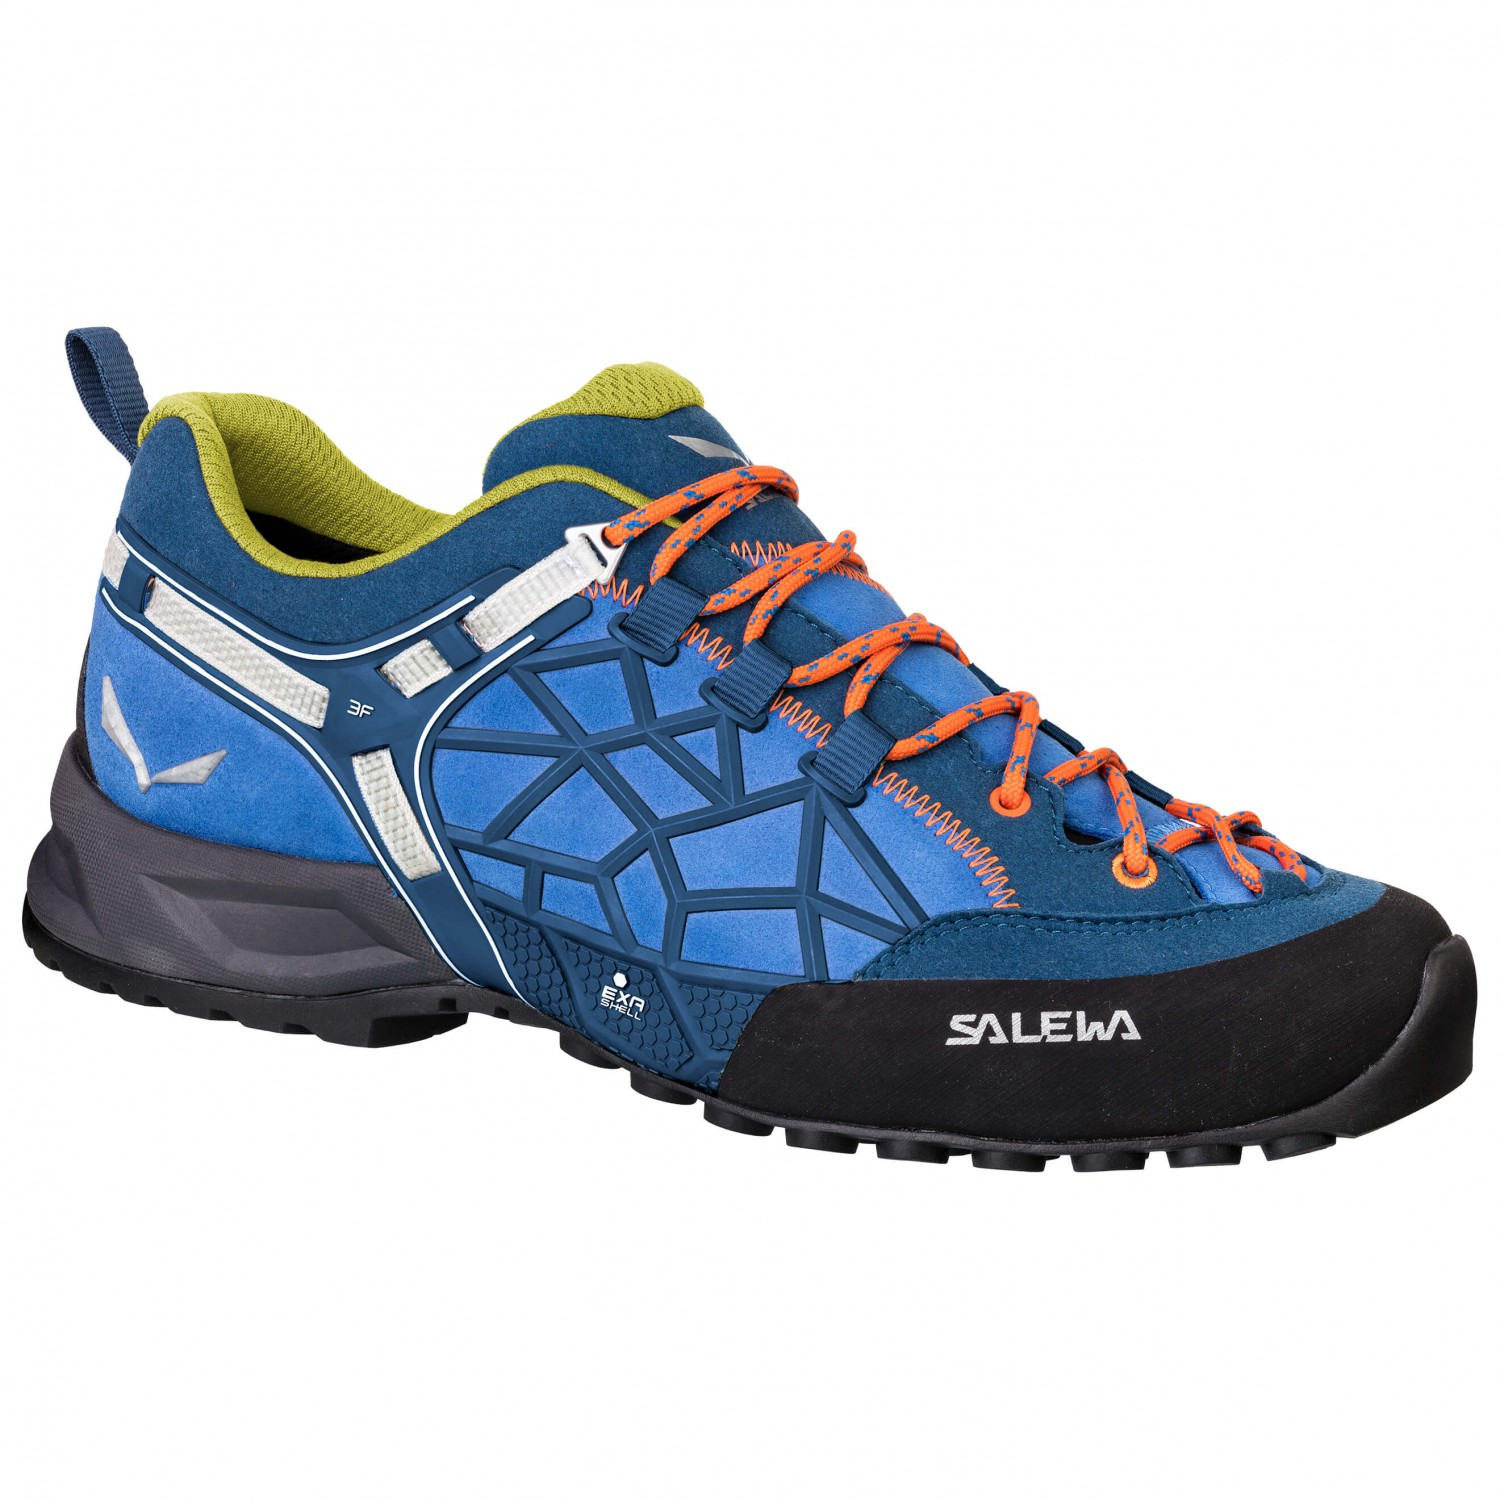 Salewa - MS Wildfire Pro - Approachschuhe Royal Blue / Holland